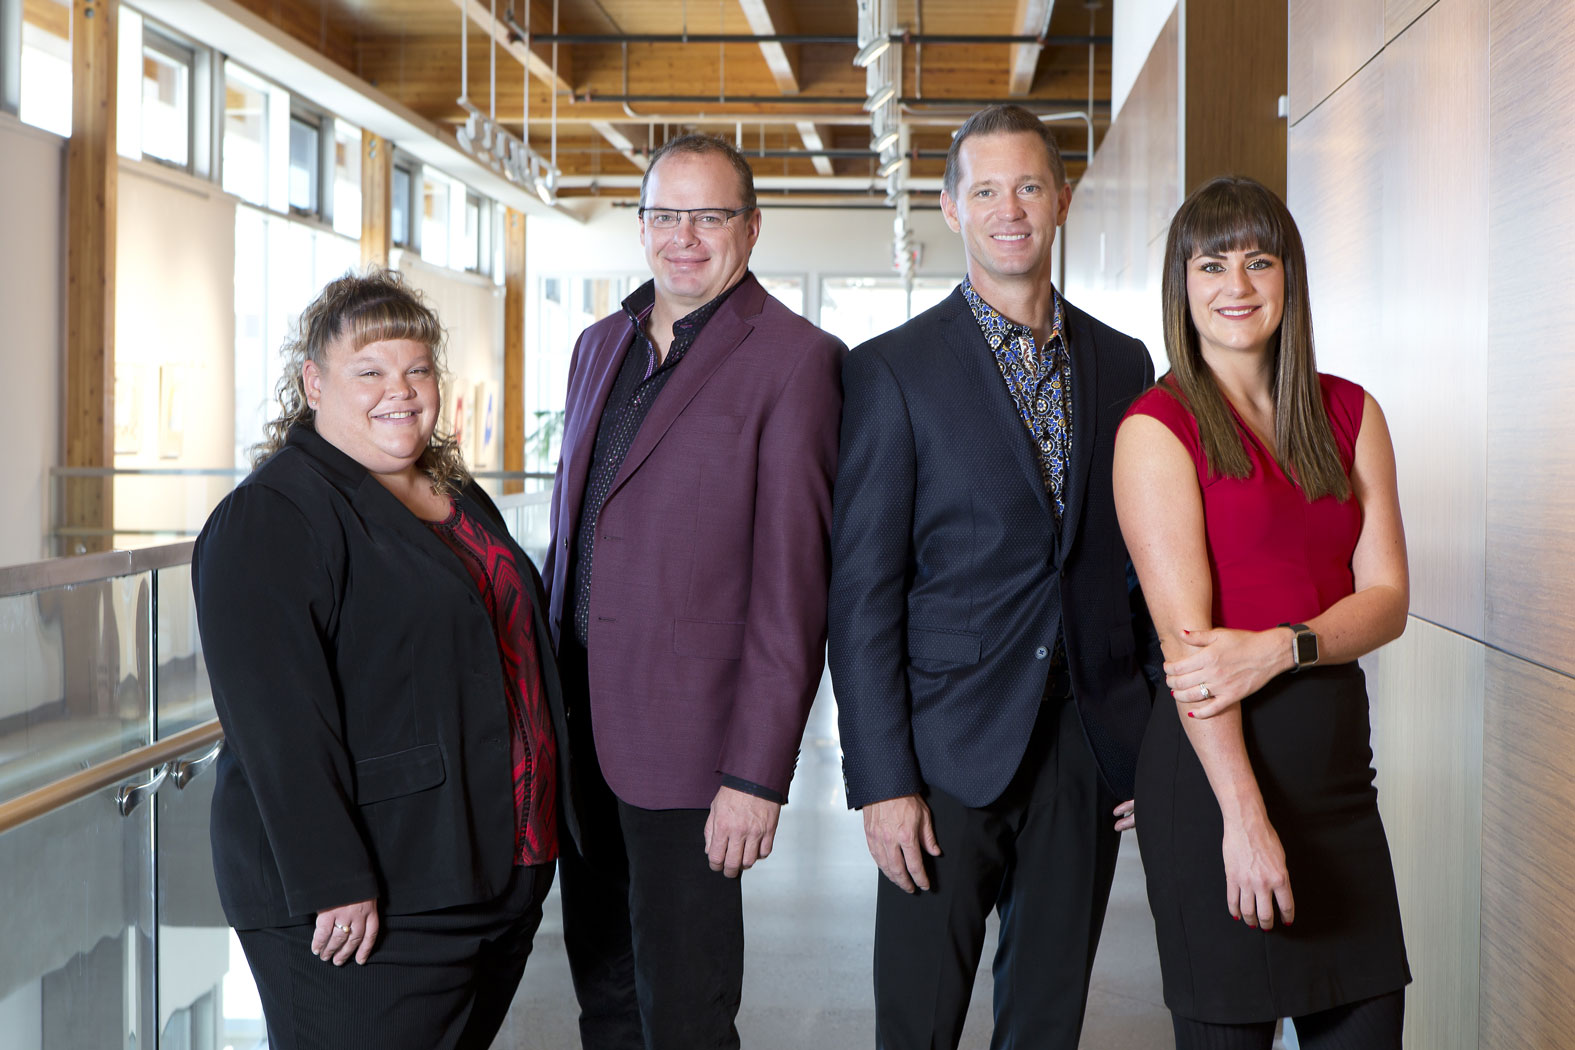 Lethbridge_Casa_Group_Photography_Corporate